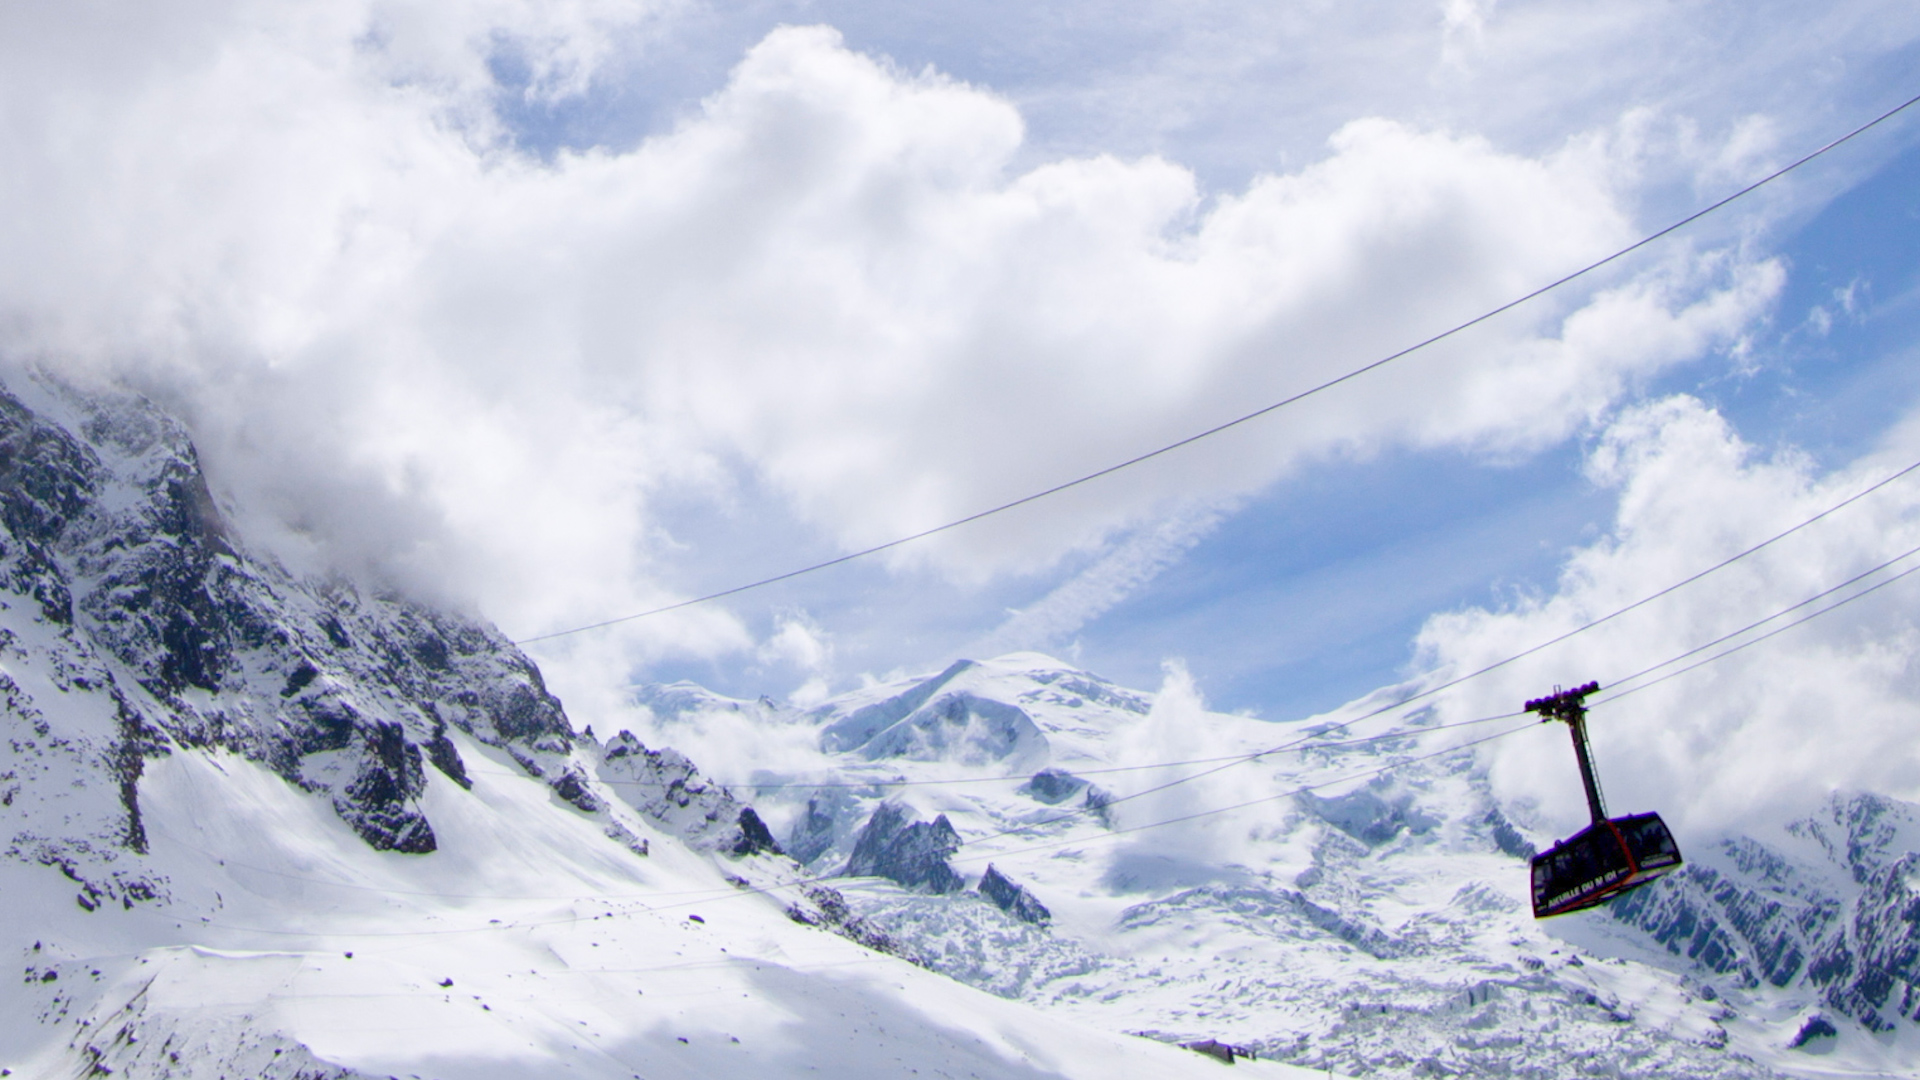 The Aiguille du Midi Cable car rises into the clouds in Chamonix